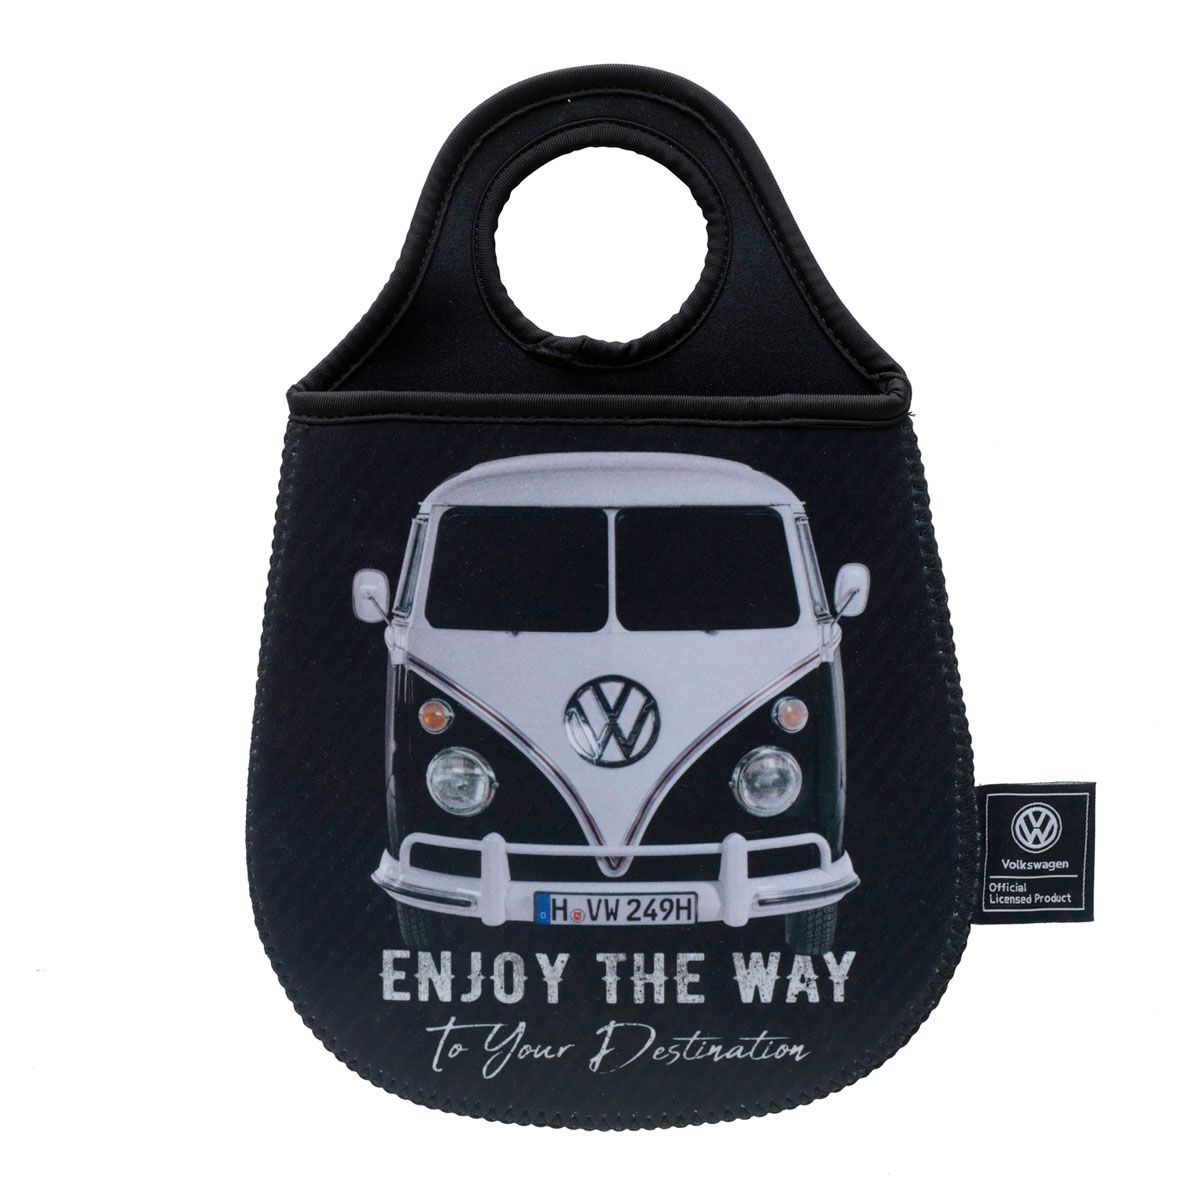 Lixeira para Carro Kombi Enjoy The Way